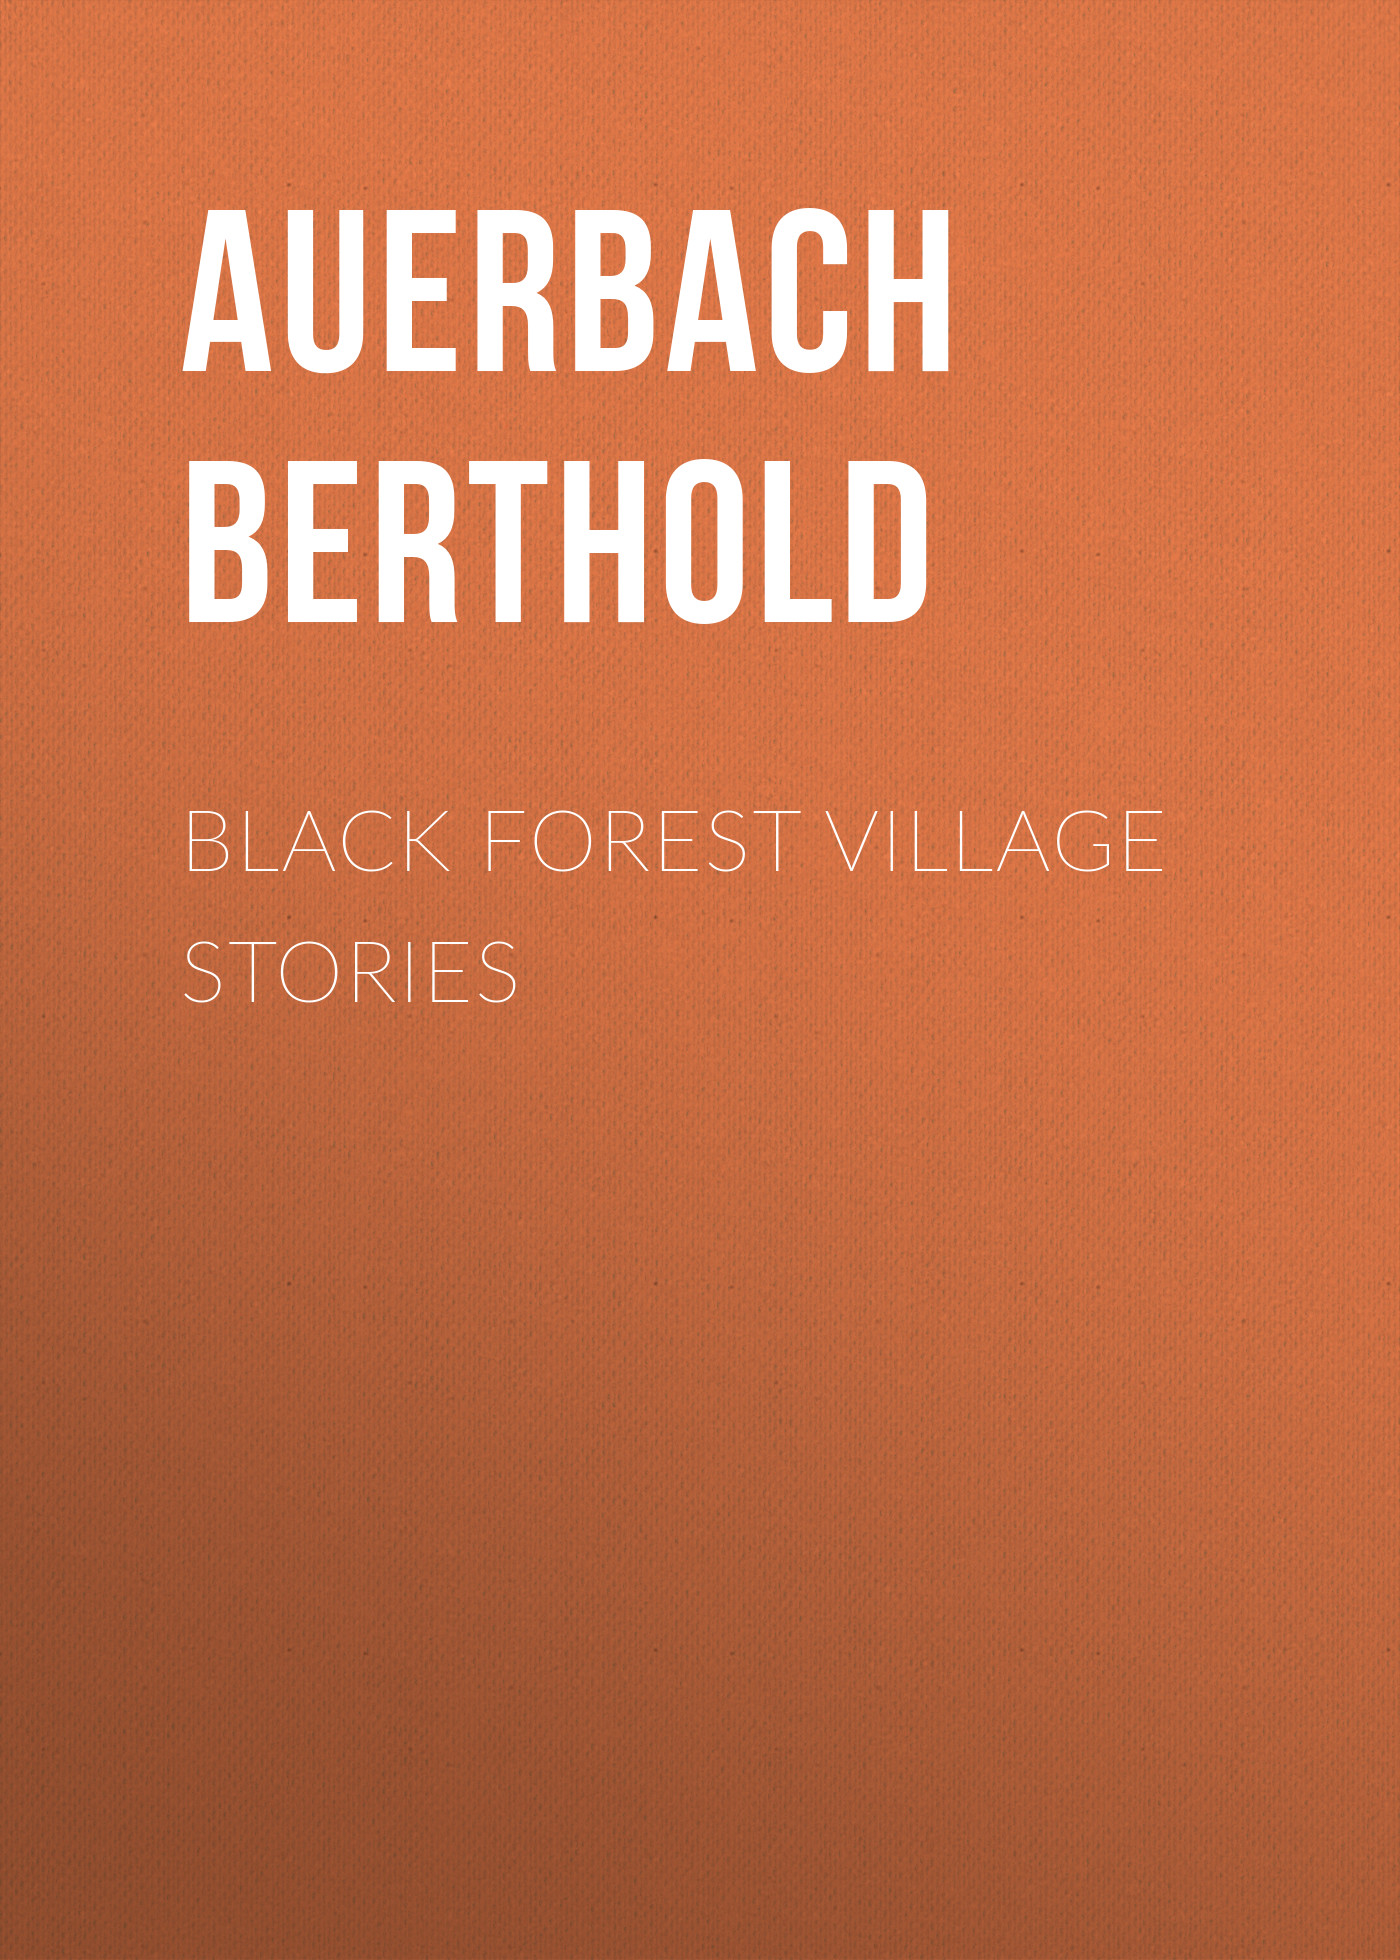 Auerbach Berthold Black Forest Village Stories